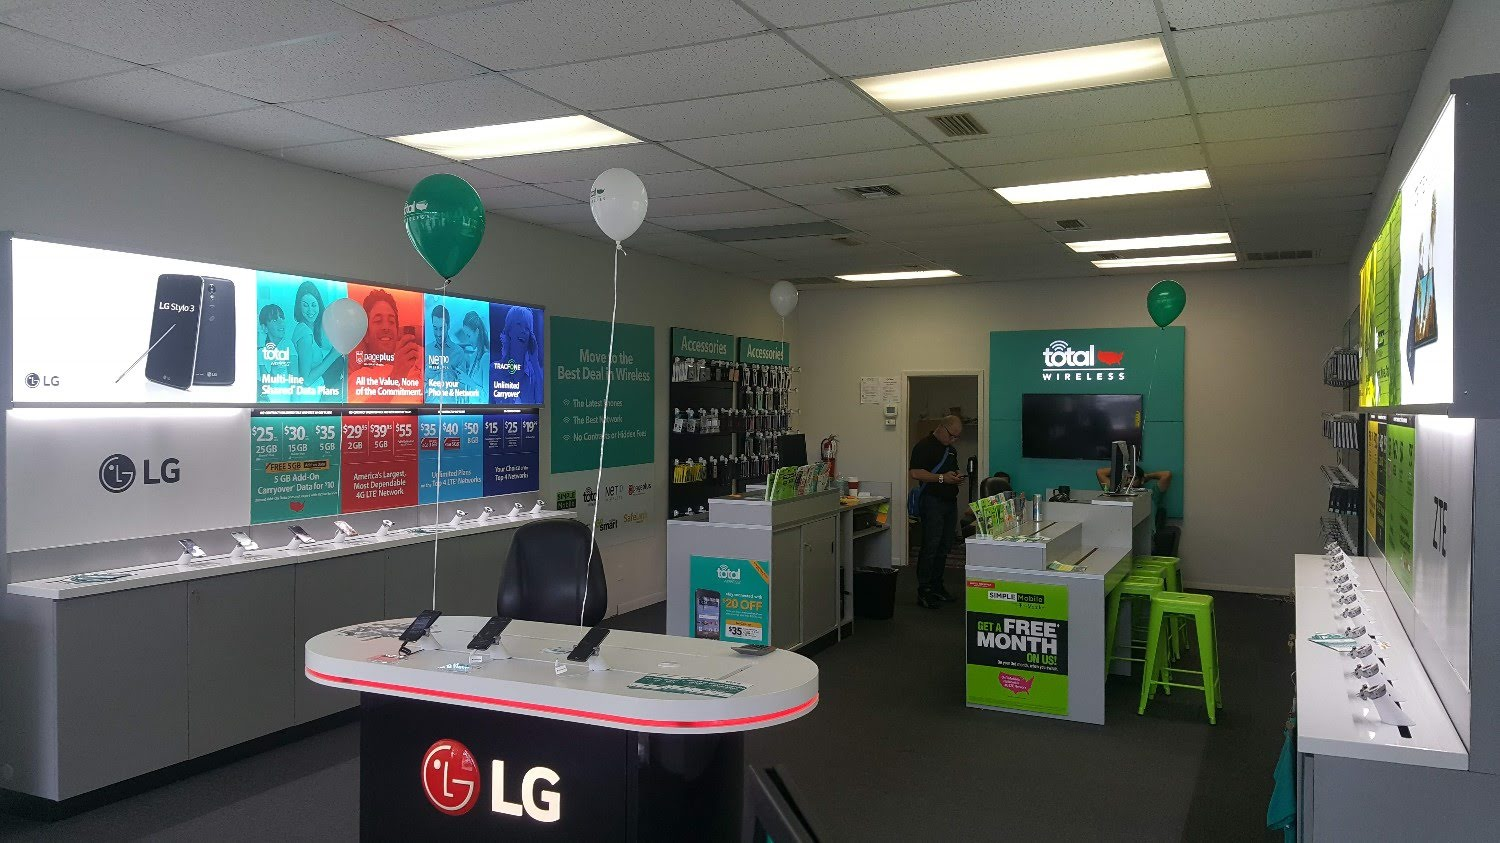 Total Wireless Store front image in Ocala,  FL